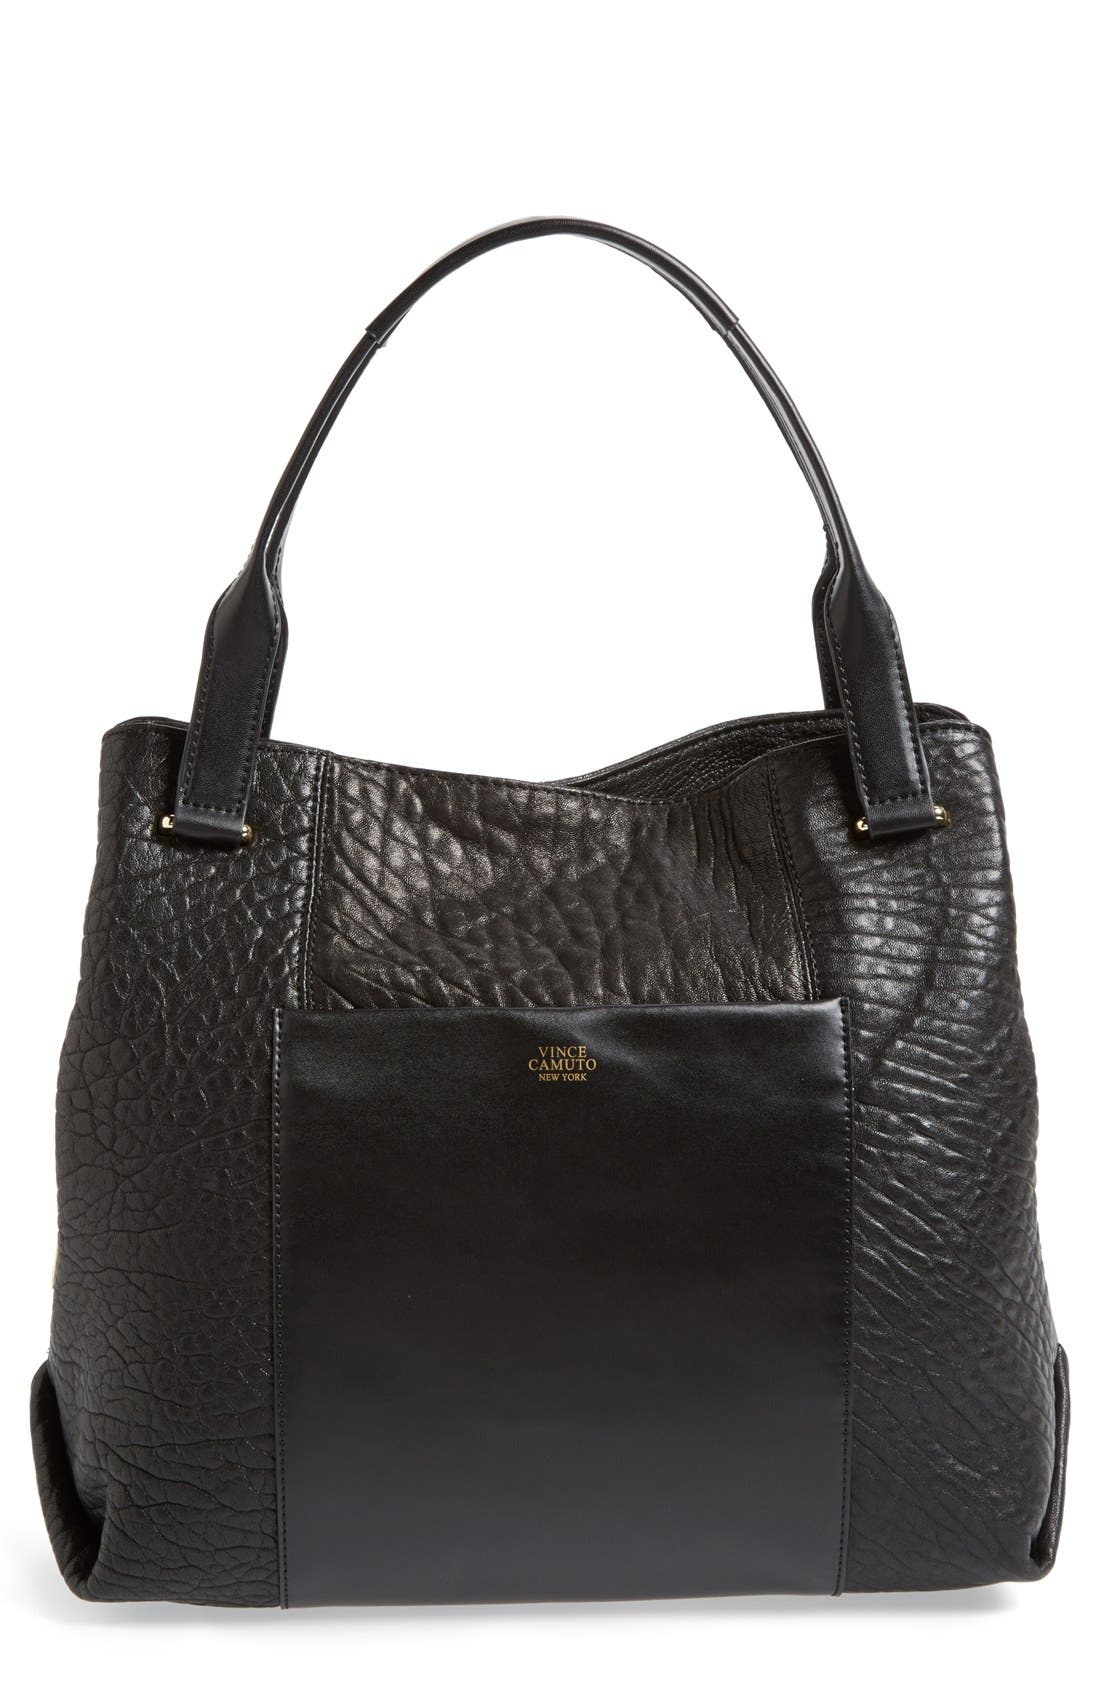 Alternate Image 1 Selected - Vince Camuto 'Maron' Leather Tote